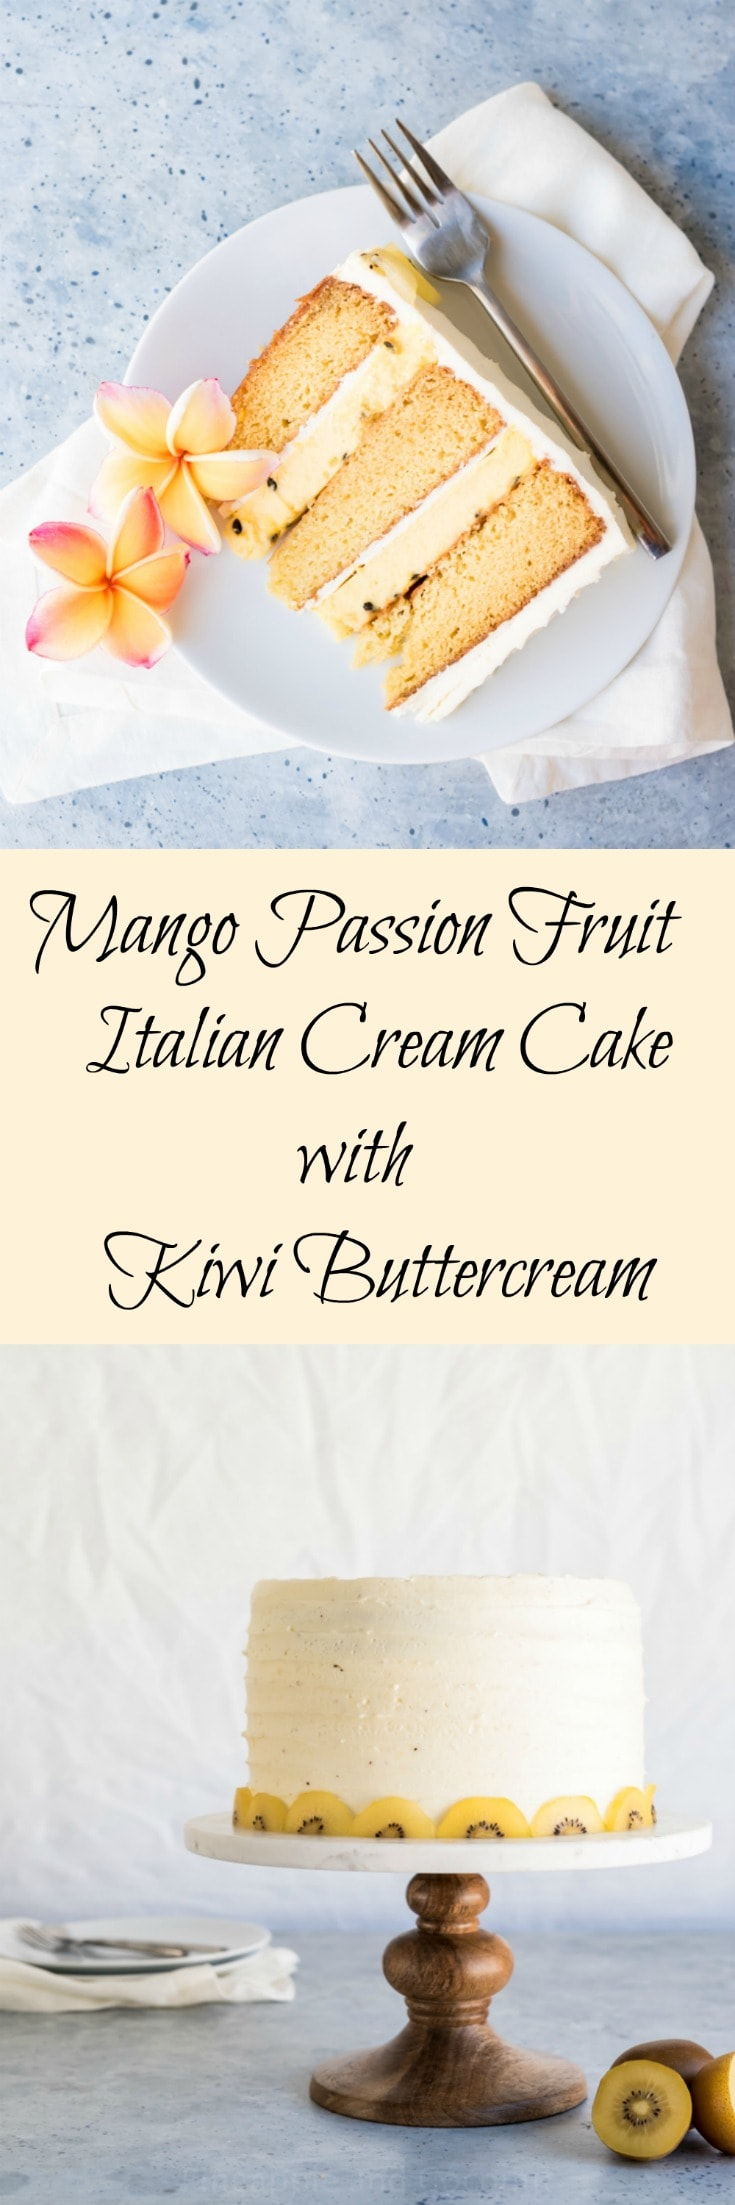 Mango Passion Fruit Italian Cream Cake with Kiwi Buttercream www.pineappleandcoconut.com #marbledswirledandlayered